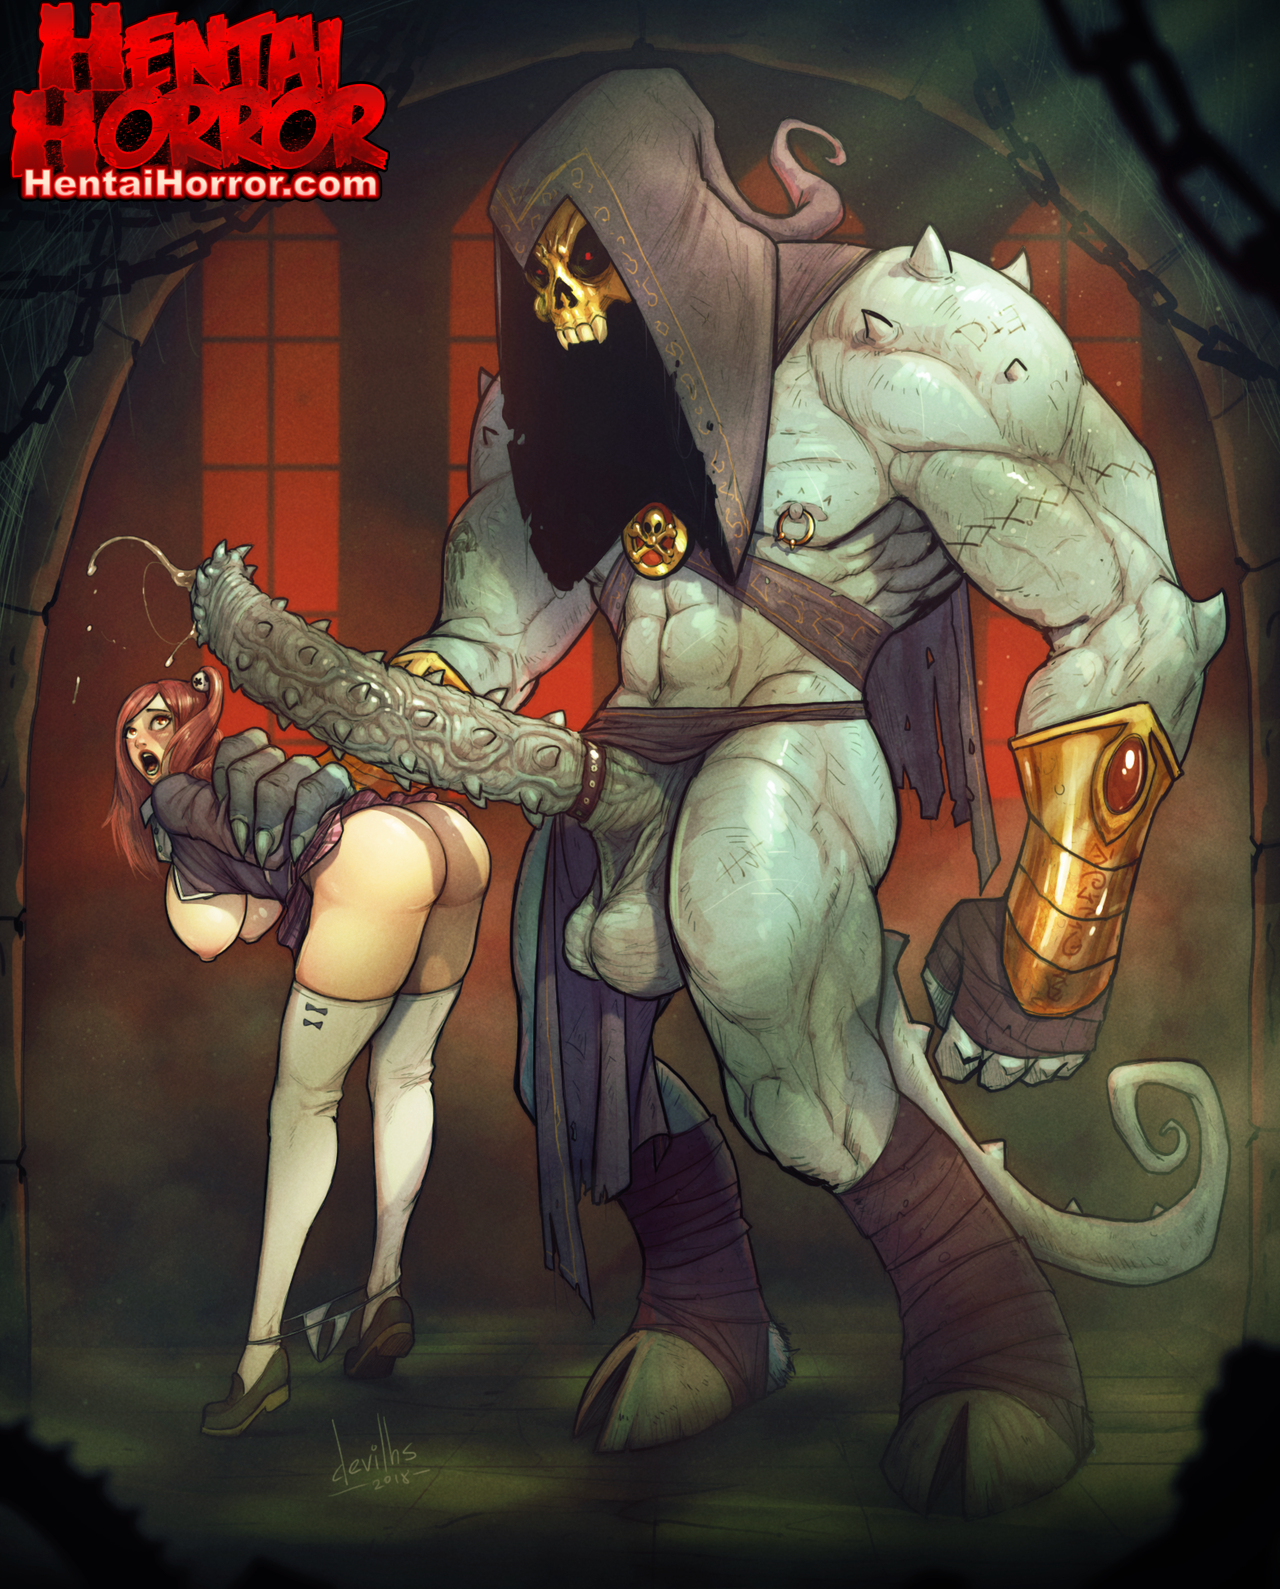 Horror cartoon - Quality porno 100% free images. Comments: 3